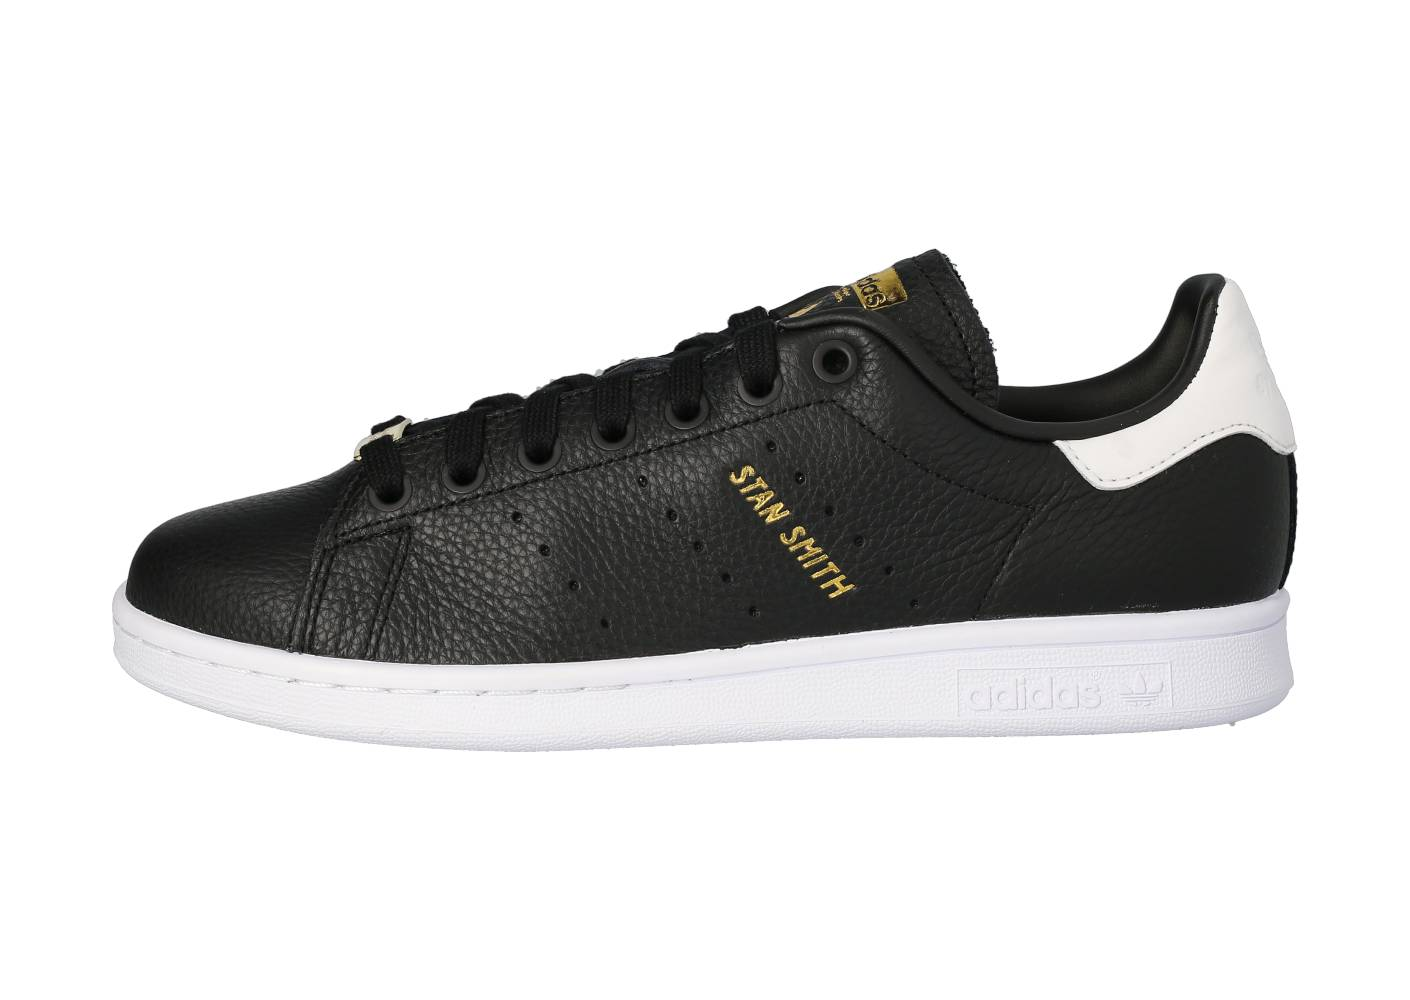 adidas Homme Stan Smith Noire Blanche Et Or Tennis 41 1/3